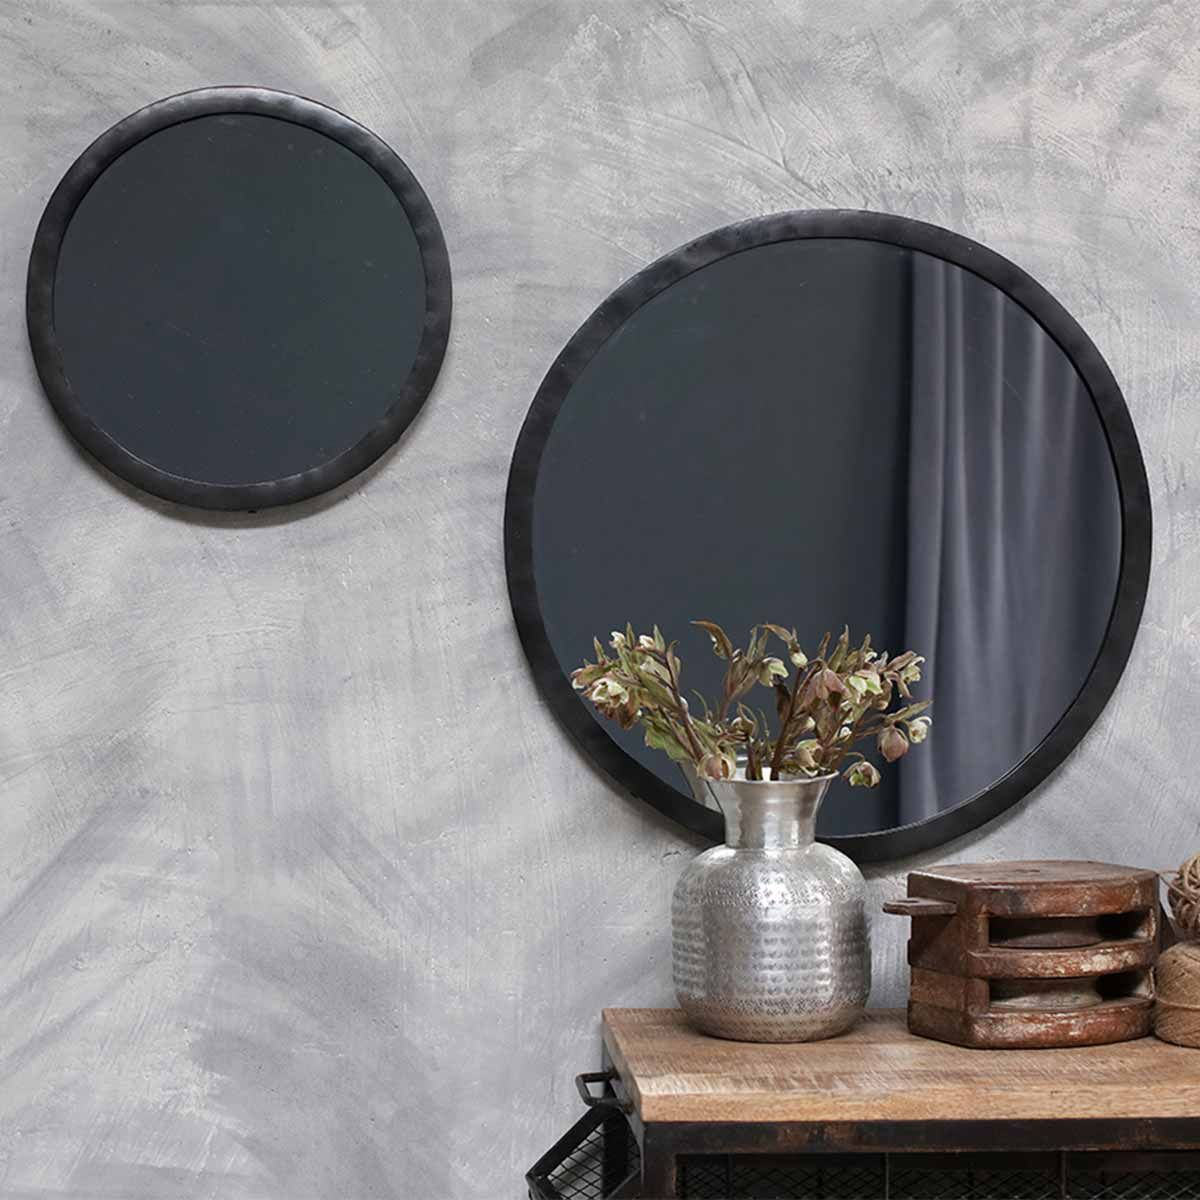 miroir rond en m tal noir forg la main modasa nkuku decoclico. Black Bedroom Furniture Sets. Home Design Ideas